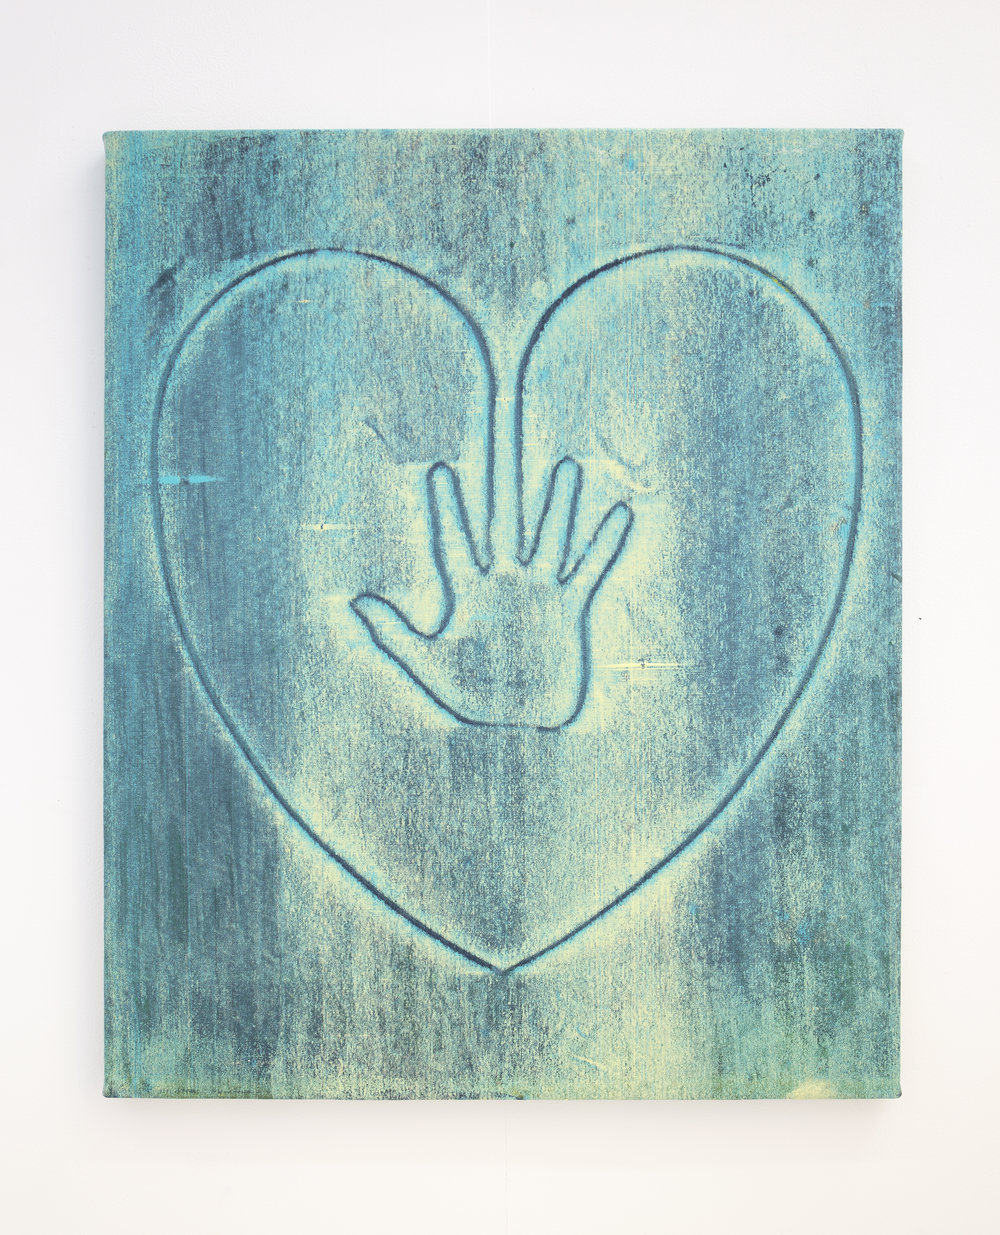 Hand on Heart (Turquoise) , 2017    acrylic on canvas  77 x 66 cm.  £1,200  [Ref. JK1]